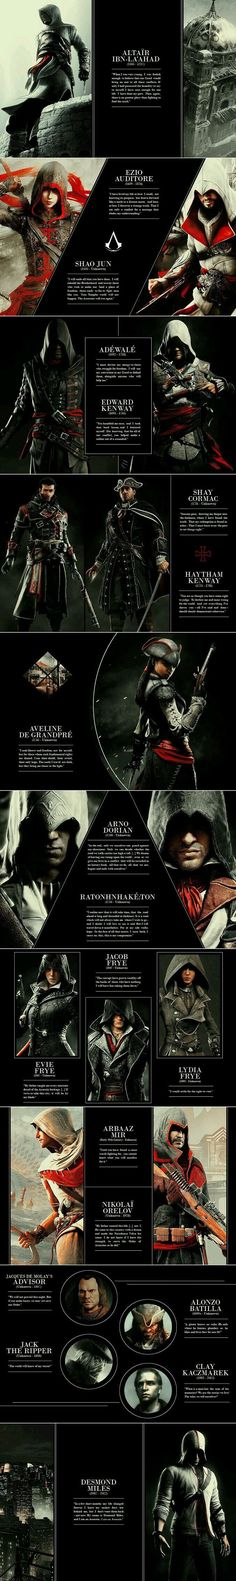 The Assassin's 🎮 Video Game Meme, Assassin's Creed Arte Assassins Creed, Assassins Creed Quotes, Assassins Creed Odyssey, Assasins Cred, Connor Kenway, Super Anime, Geek Culture, Skyrim, Playstation